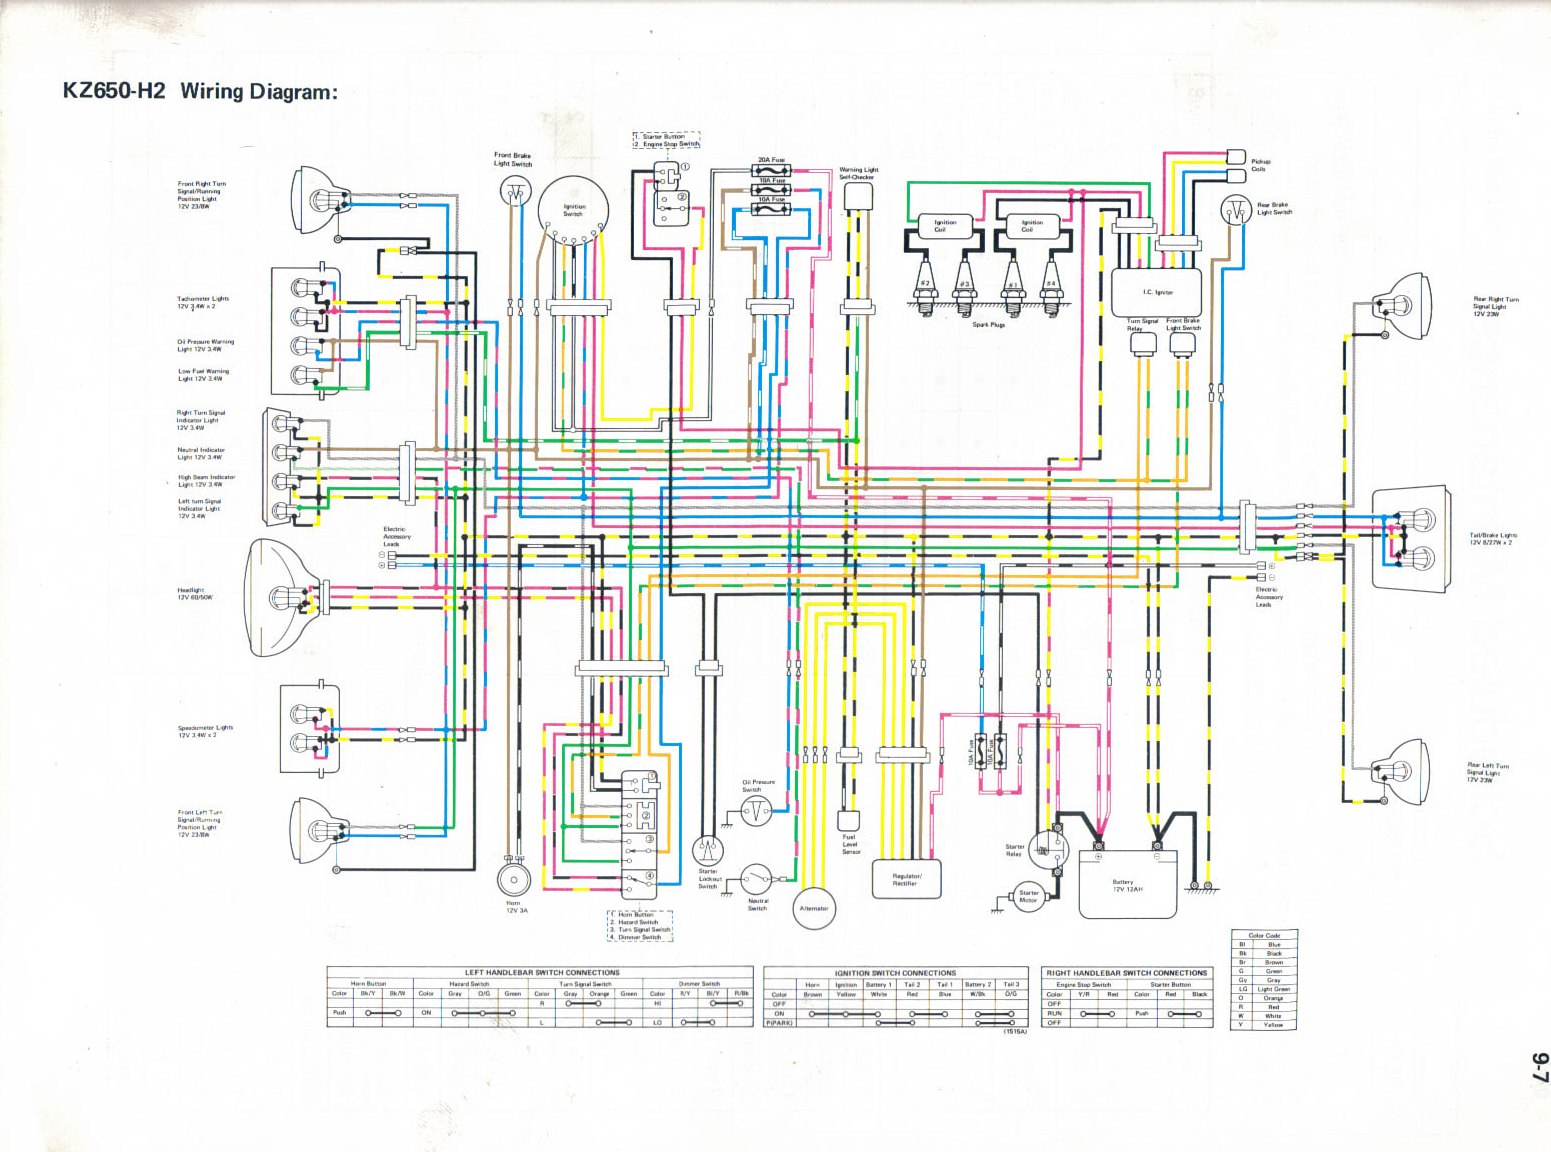 KZ650 H2 kz650 info wiring diagrams 1980 kawasaki 440 ltd wiring diagram at bakdesigns.co